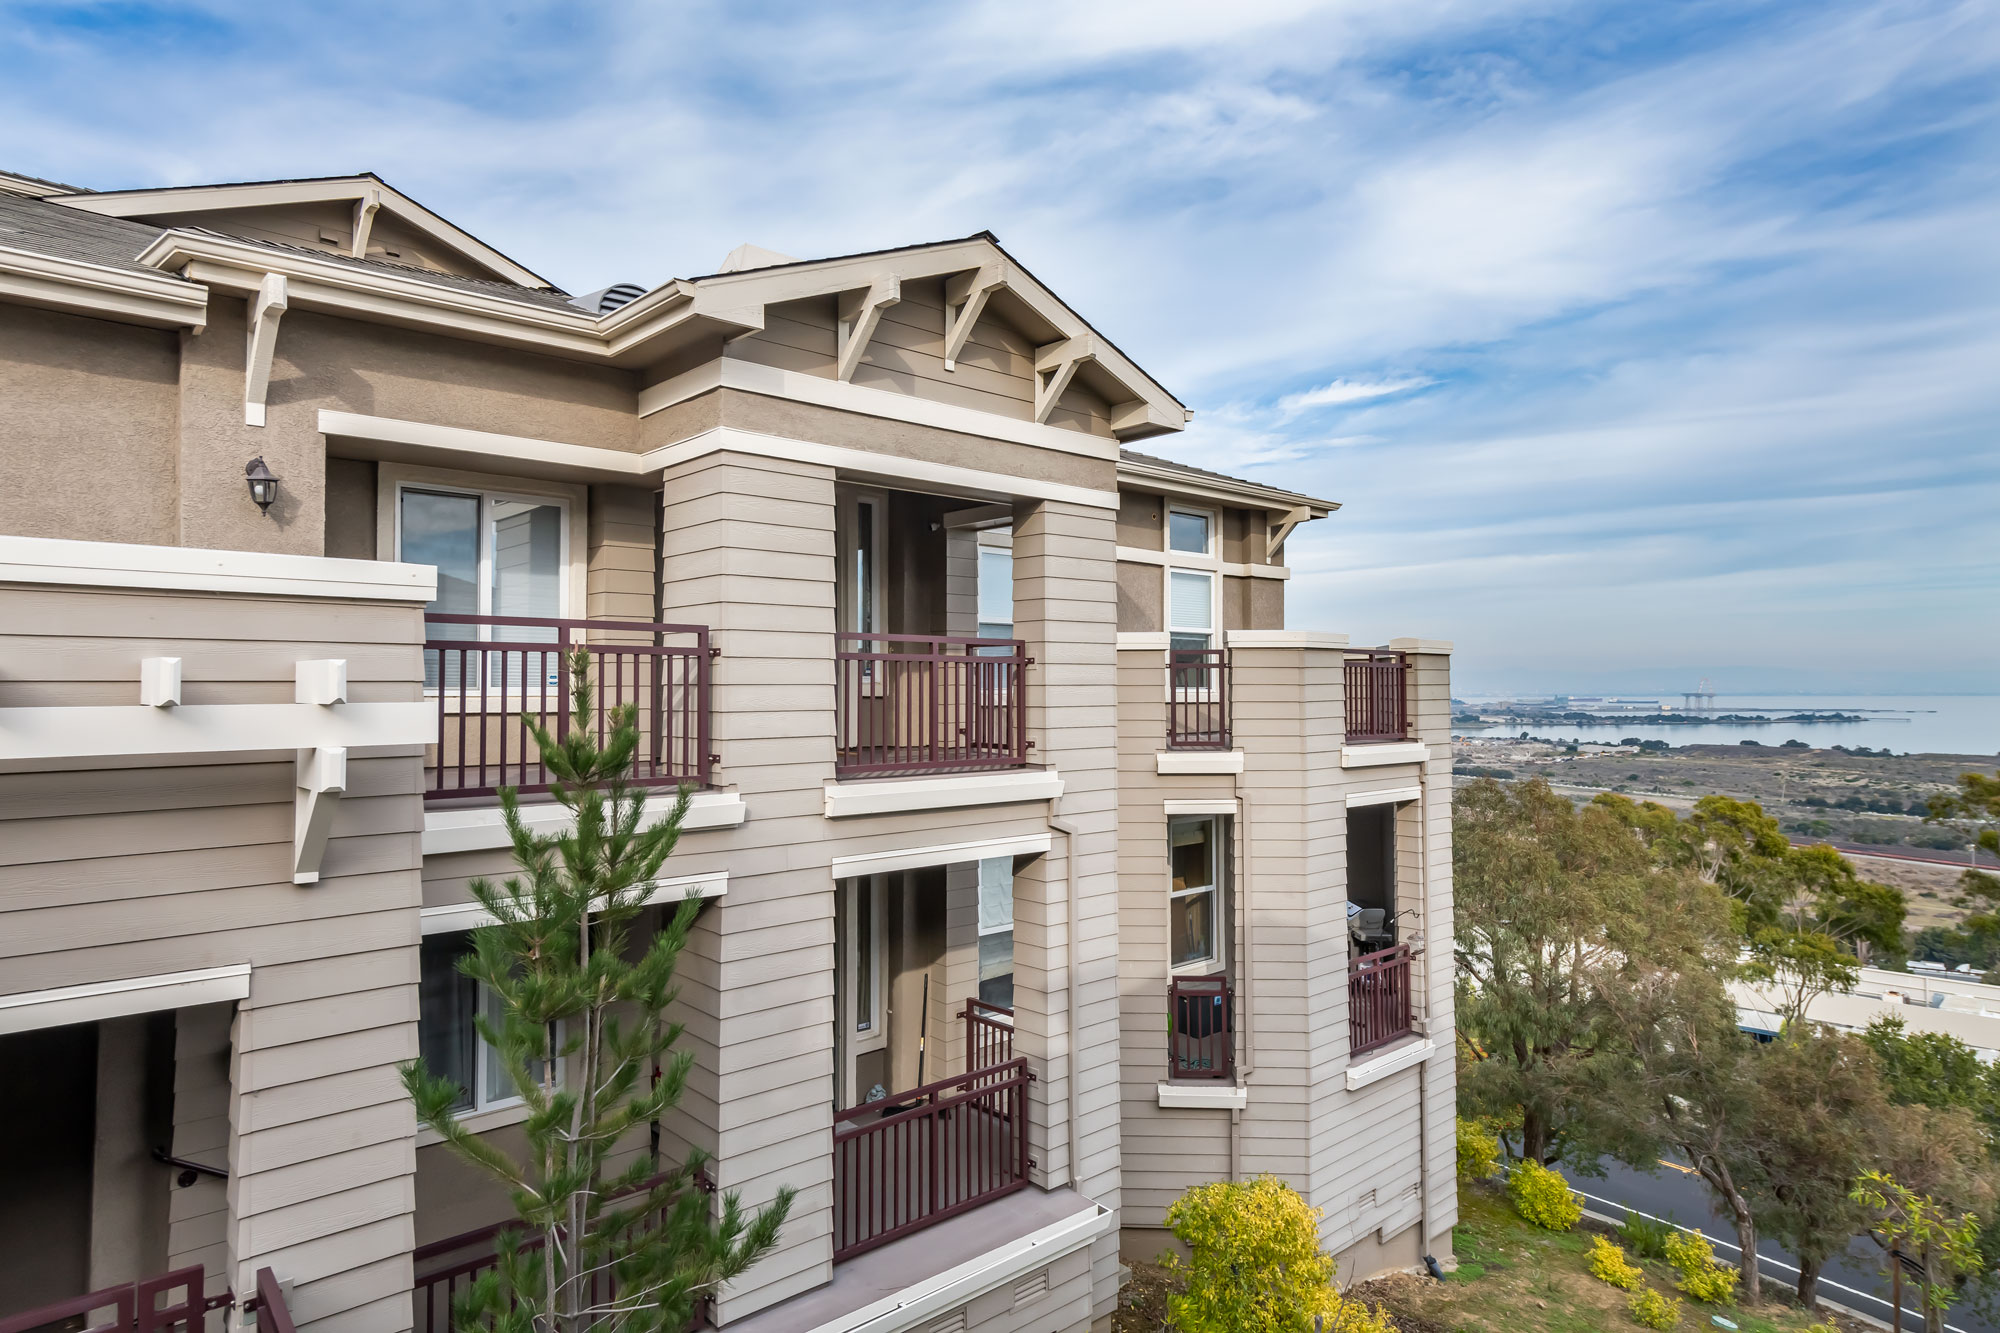 135 Golden Eagle Lane, Brisbane, CA  EXPANSIVE VIEWS FROM THIS VIEW POINT AT THE RIDGE CONDOMINIUM